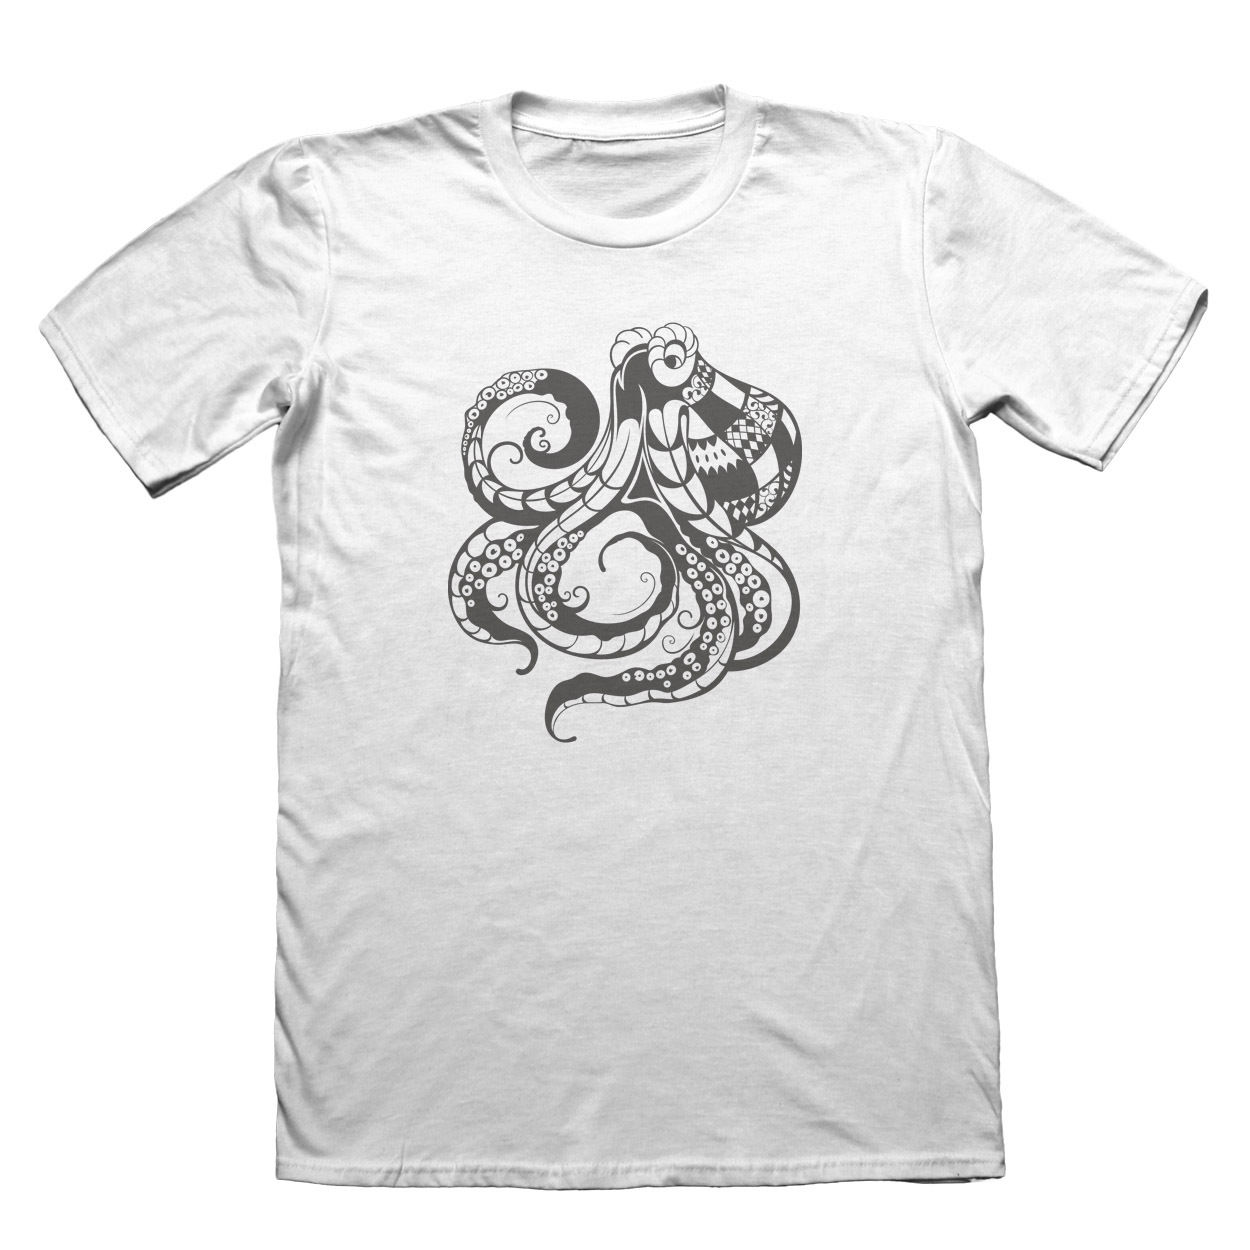 Octopus T-Shirt - Mens Fathers Day Christmas Gift #7372